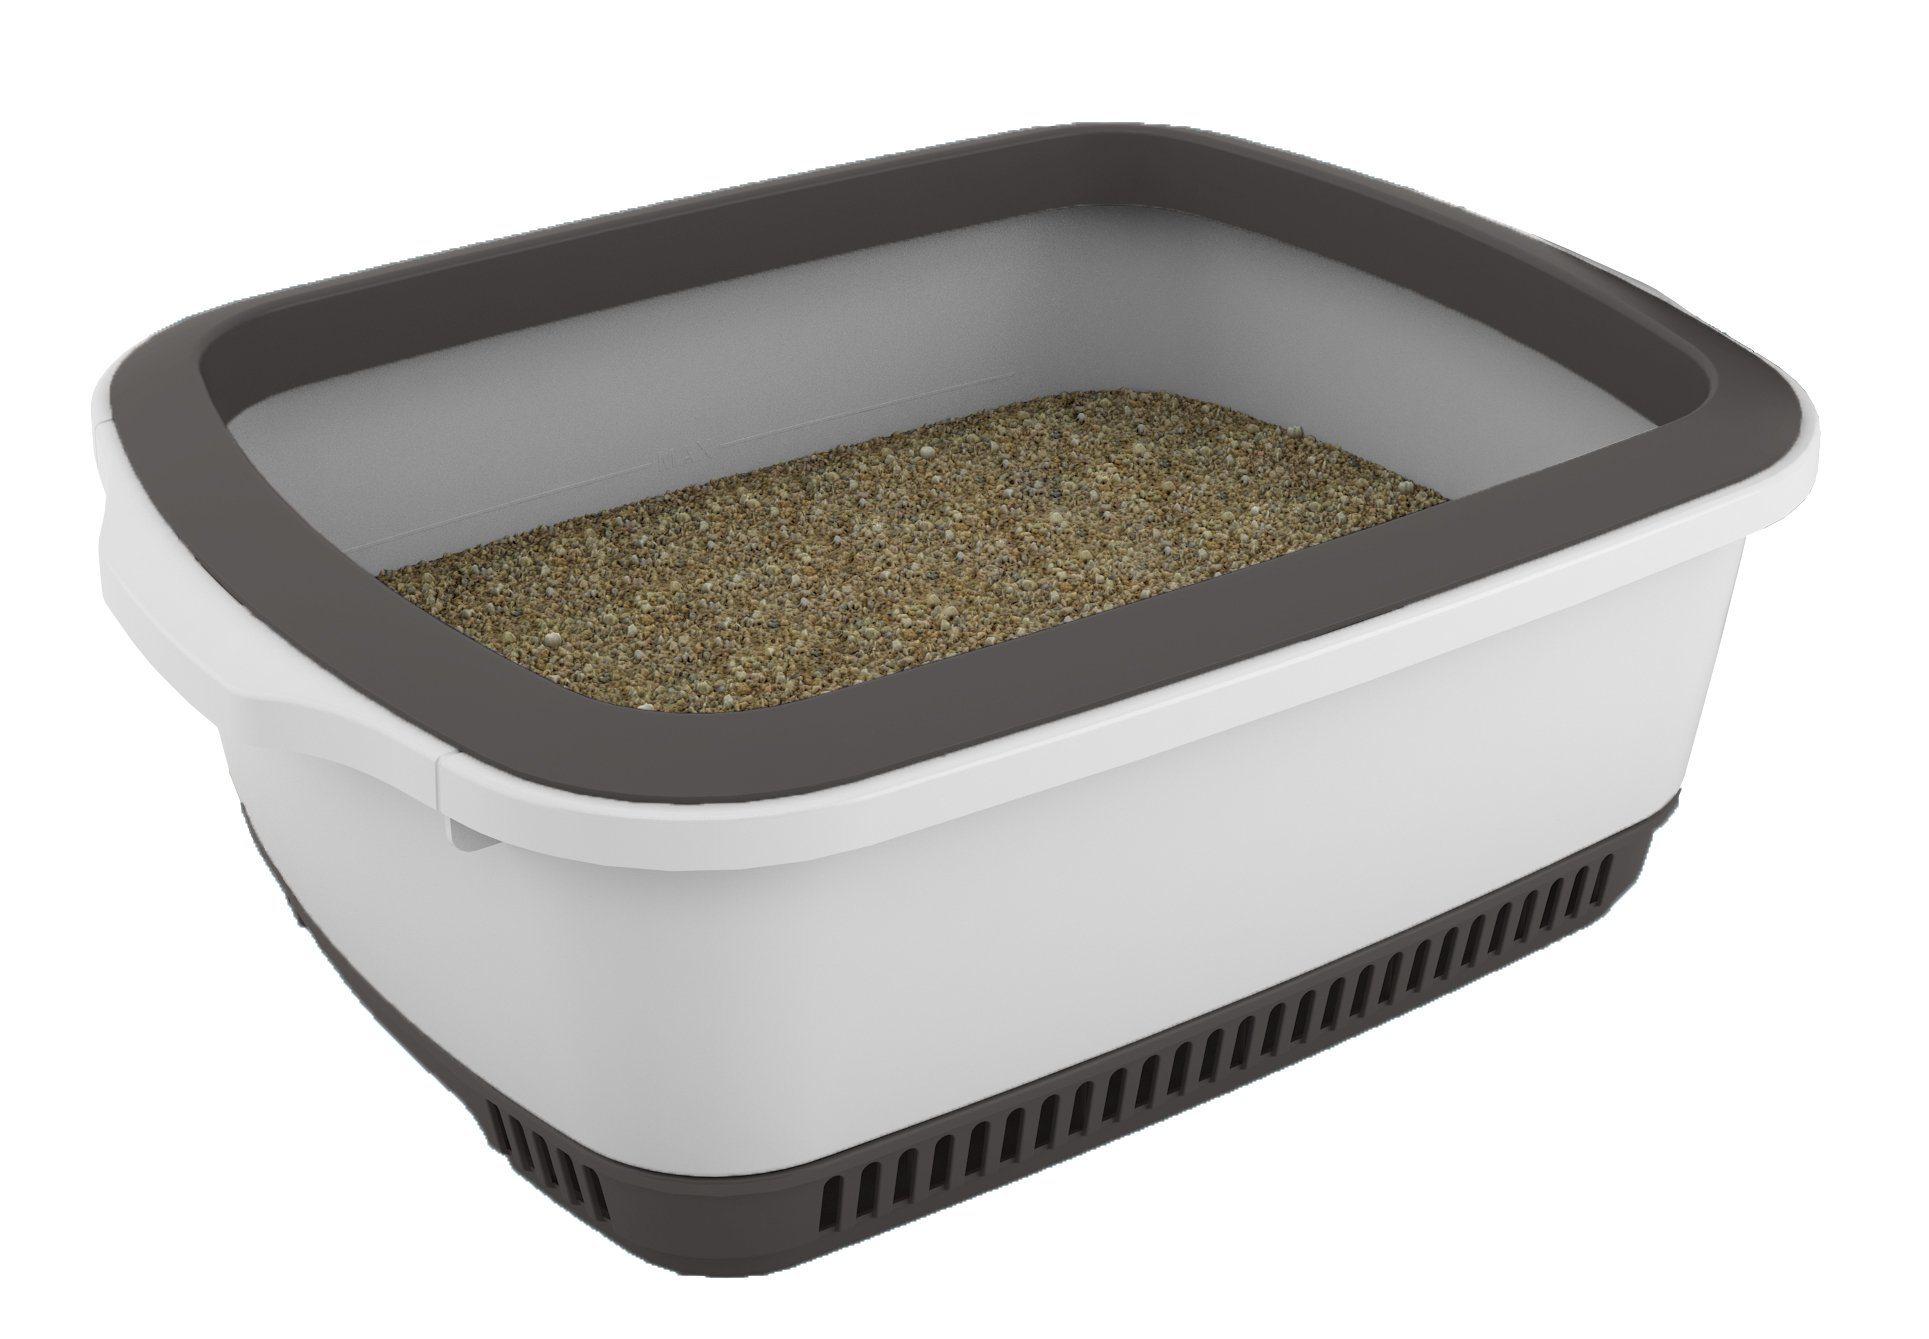 Cateco Self-Drying Litter Box, Grey